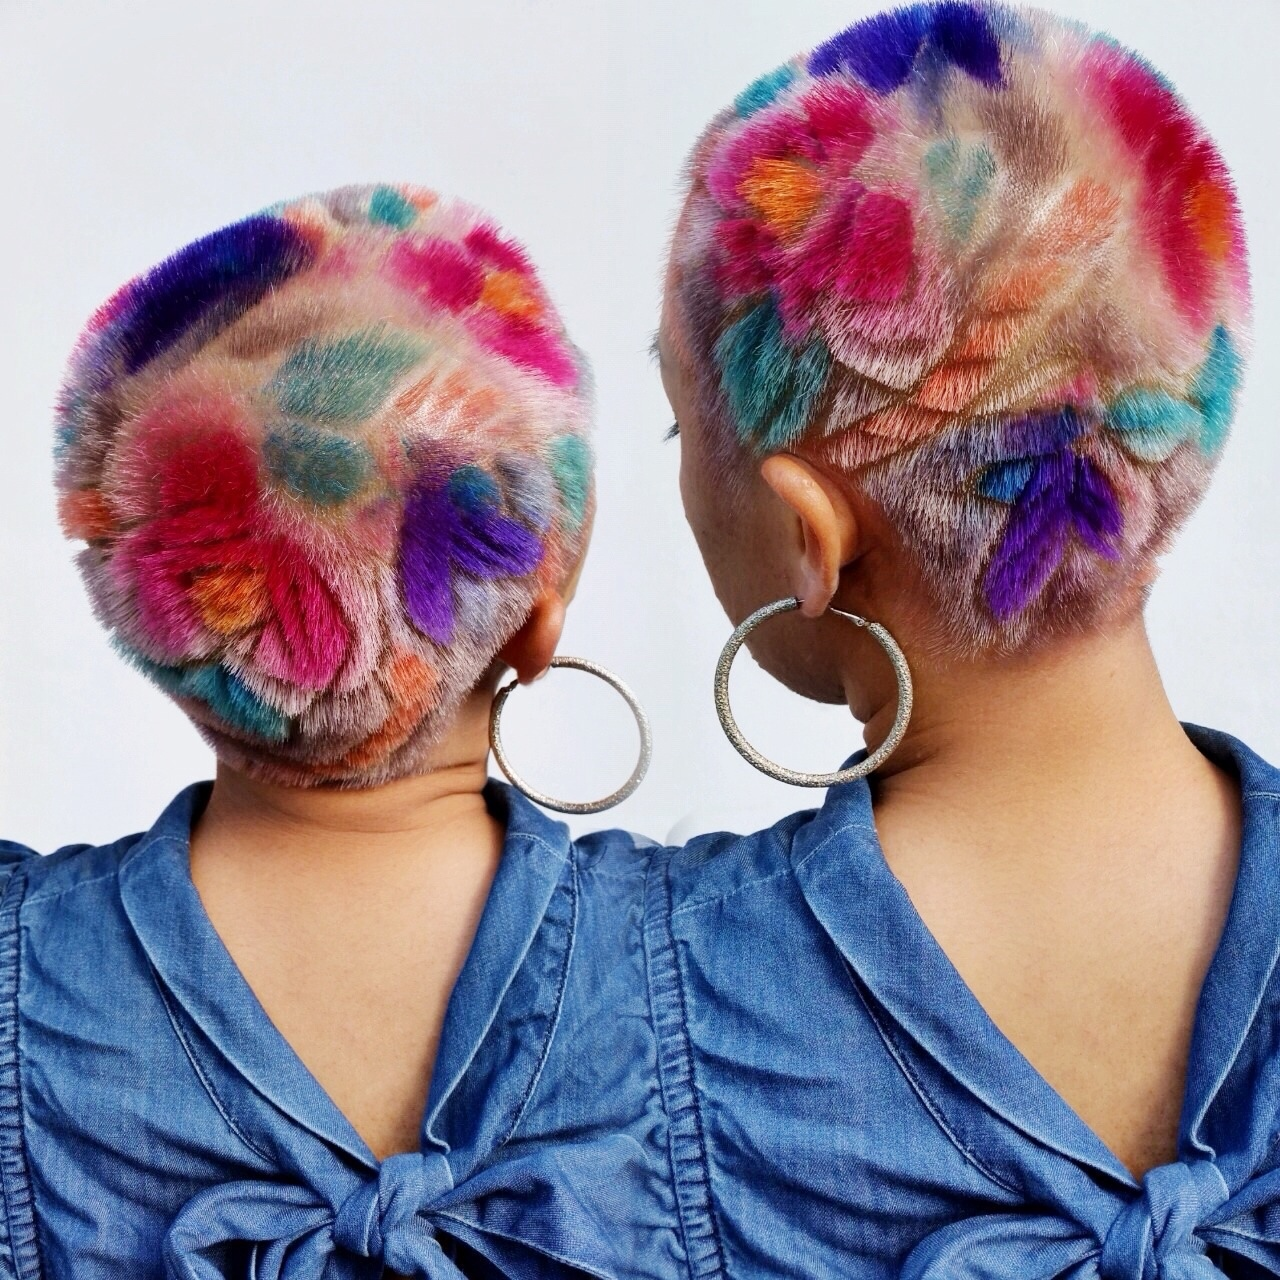 Geometric Buzz Cuts And Colorful Hair Tattoos Inspired By 90s Punk